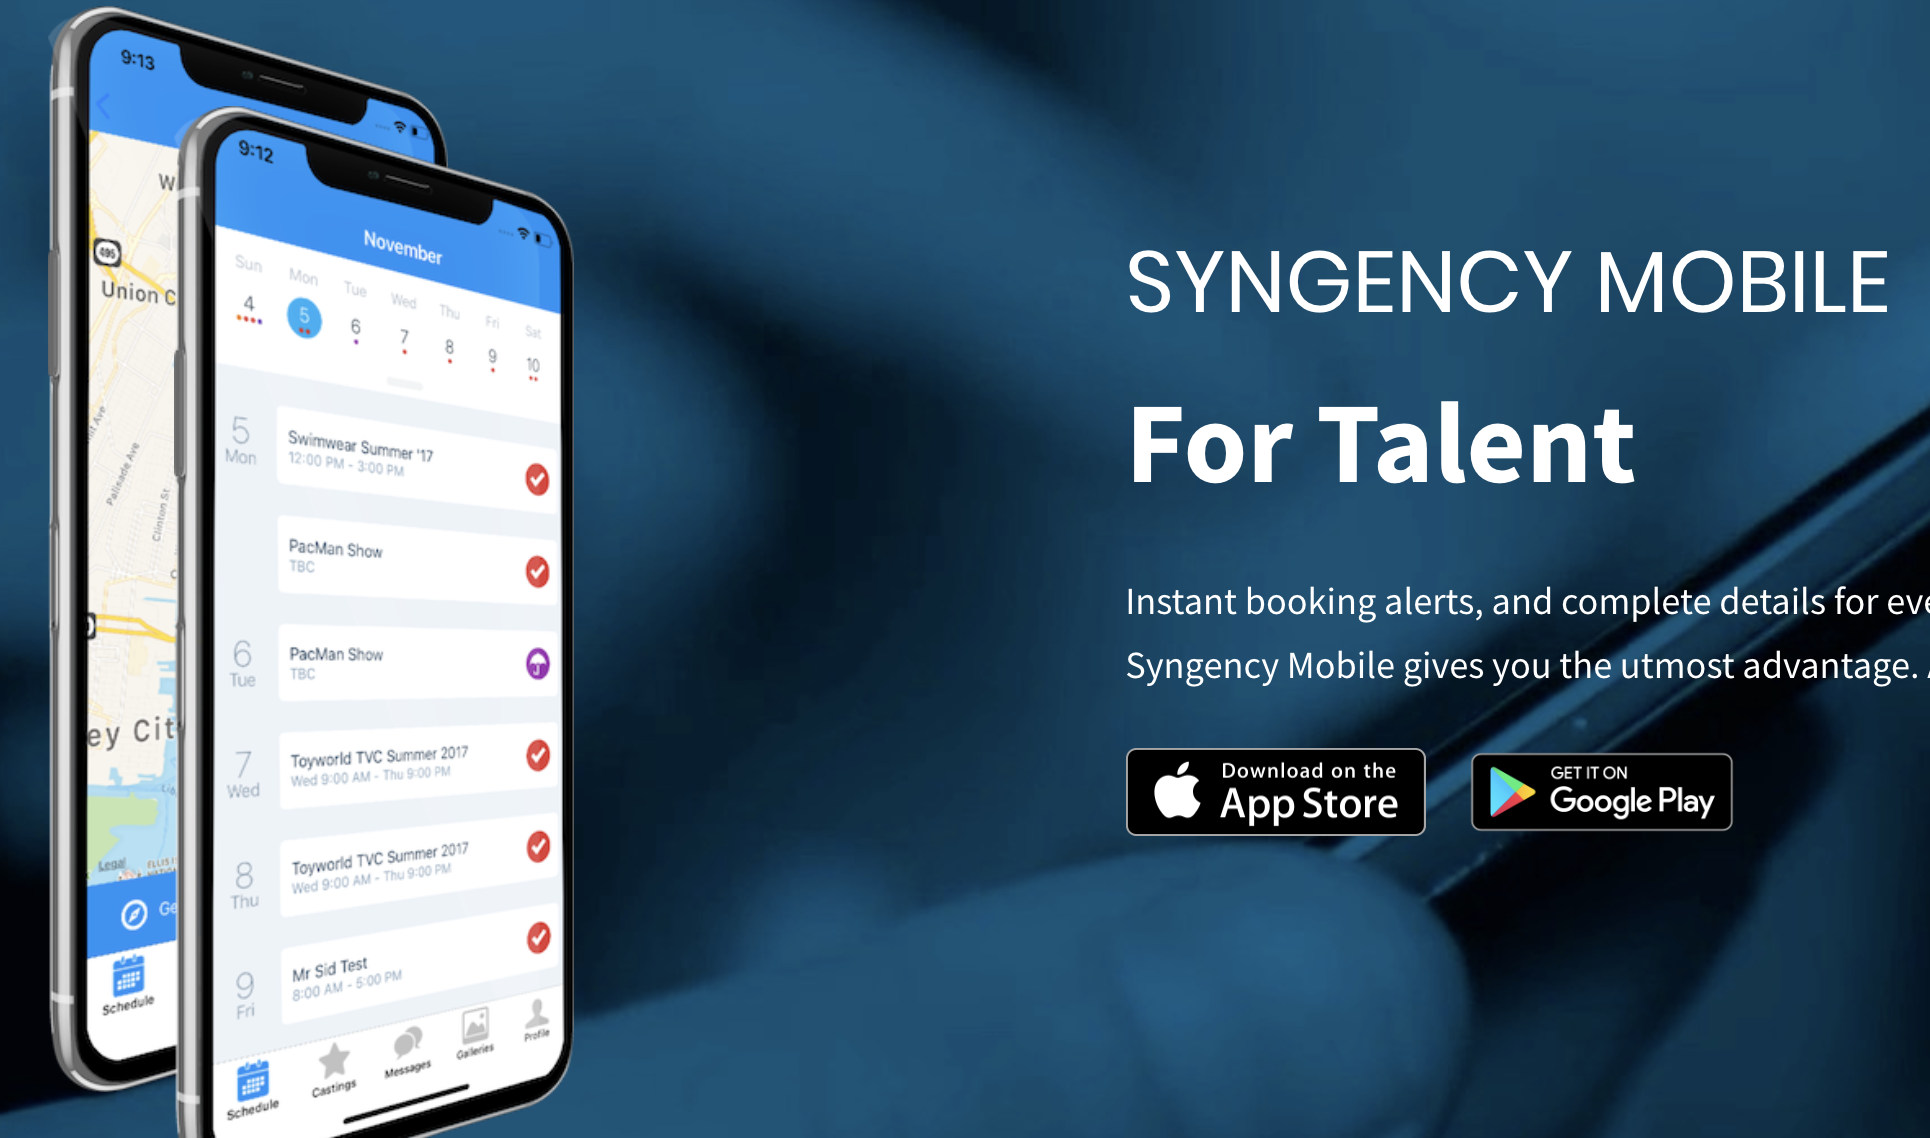 Syngency Mobile for Talent